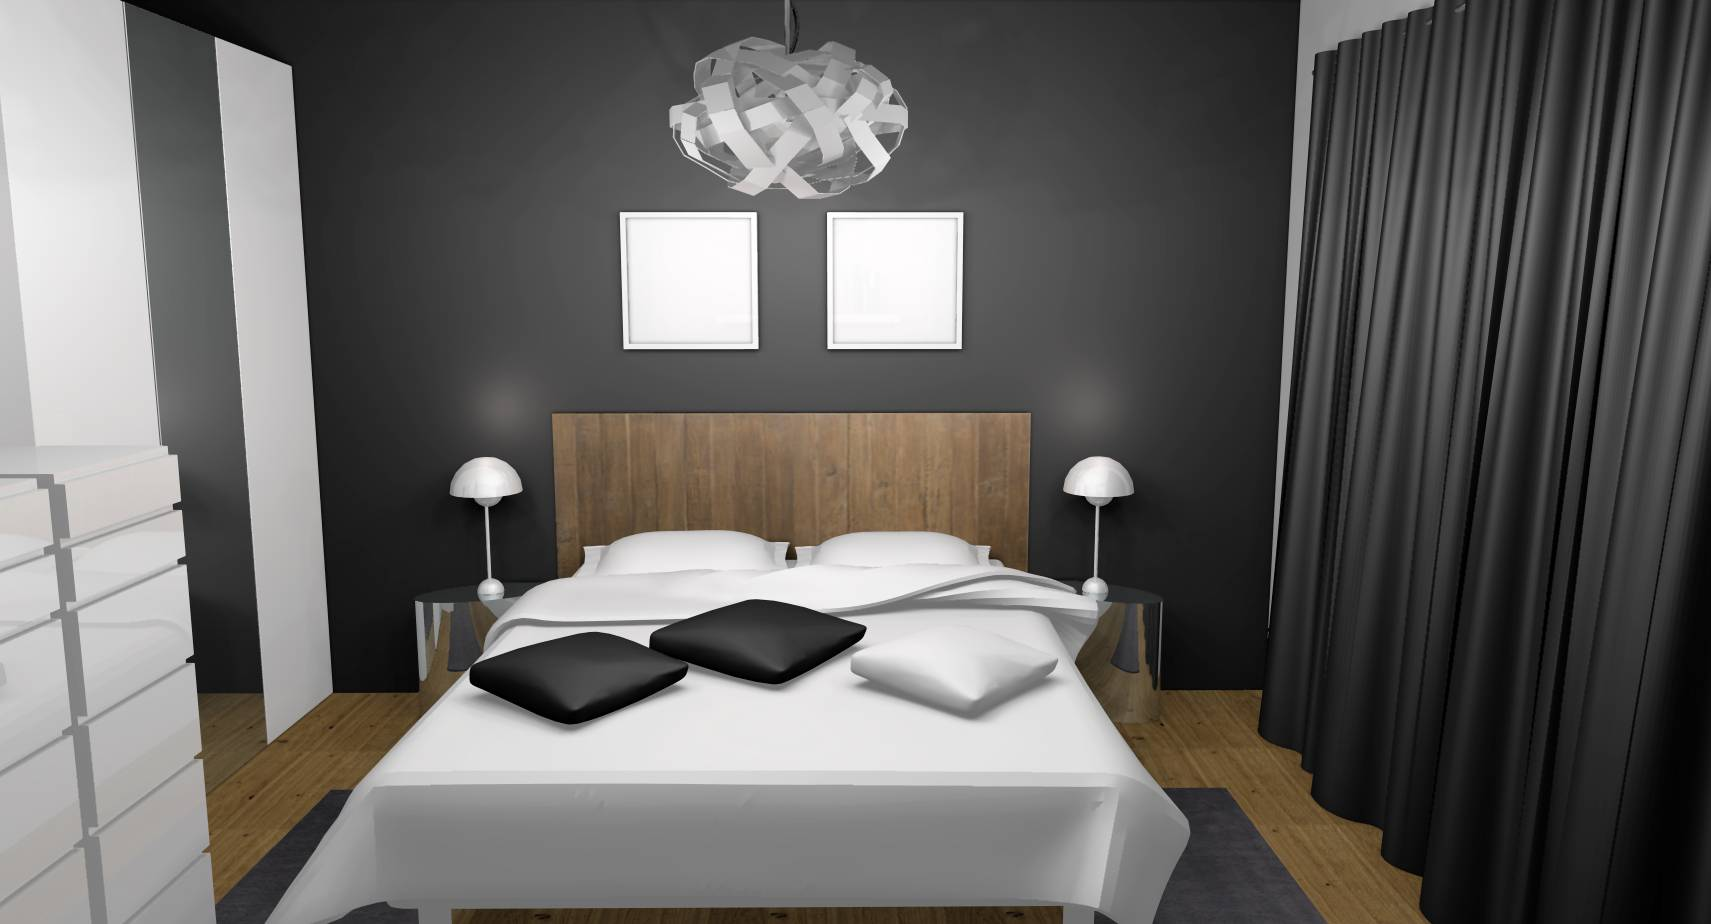 r agencement et d coration d 39 une chambre adulte sceaux. Black Bedroom Furniture Sets. Home Design Ideas